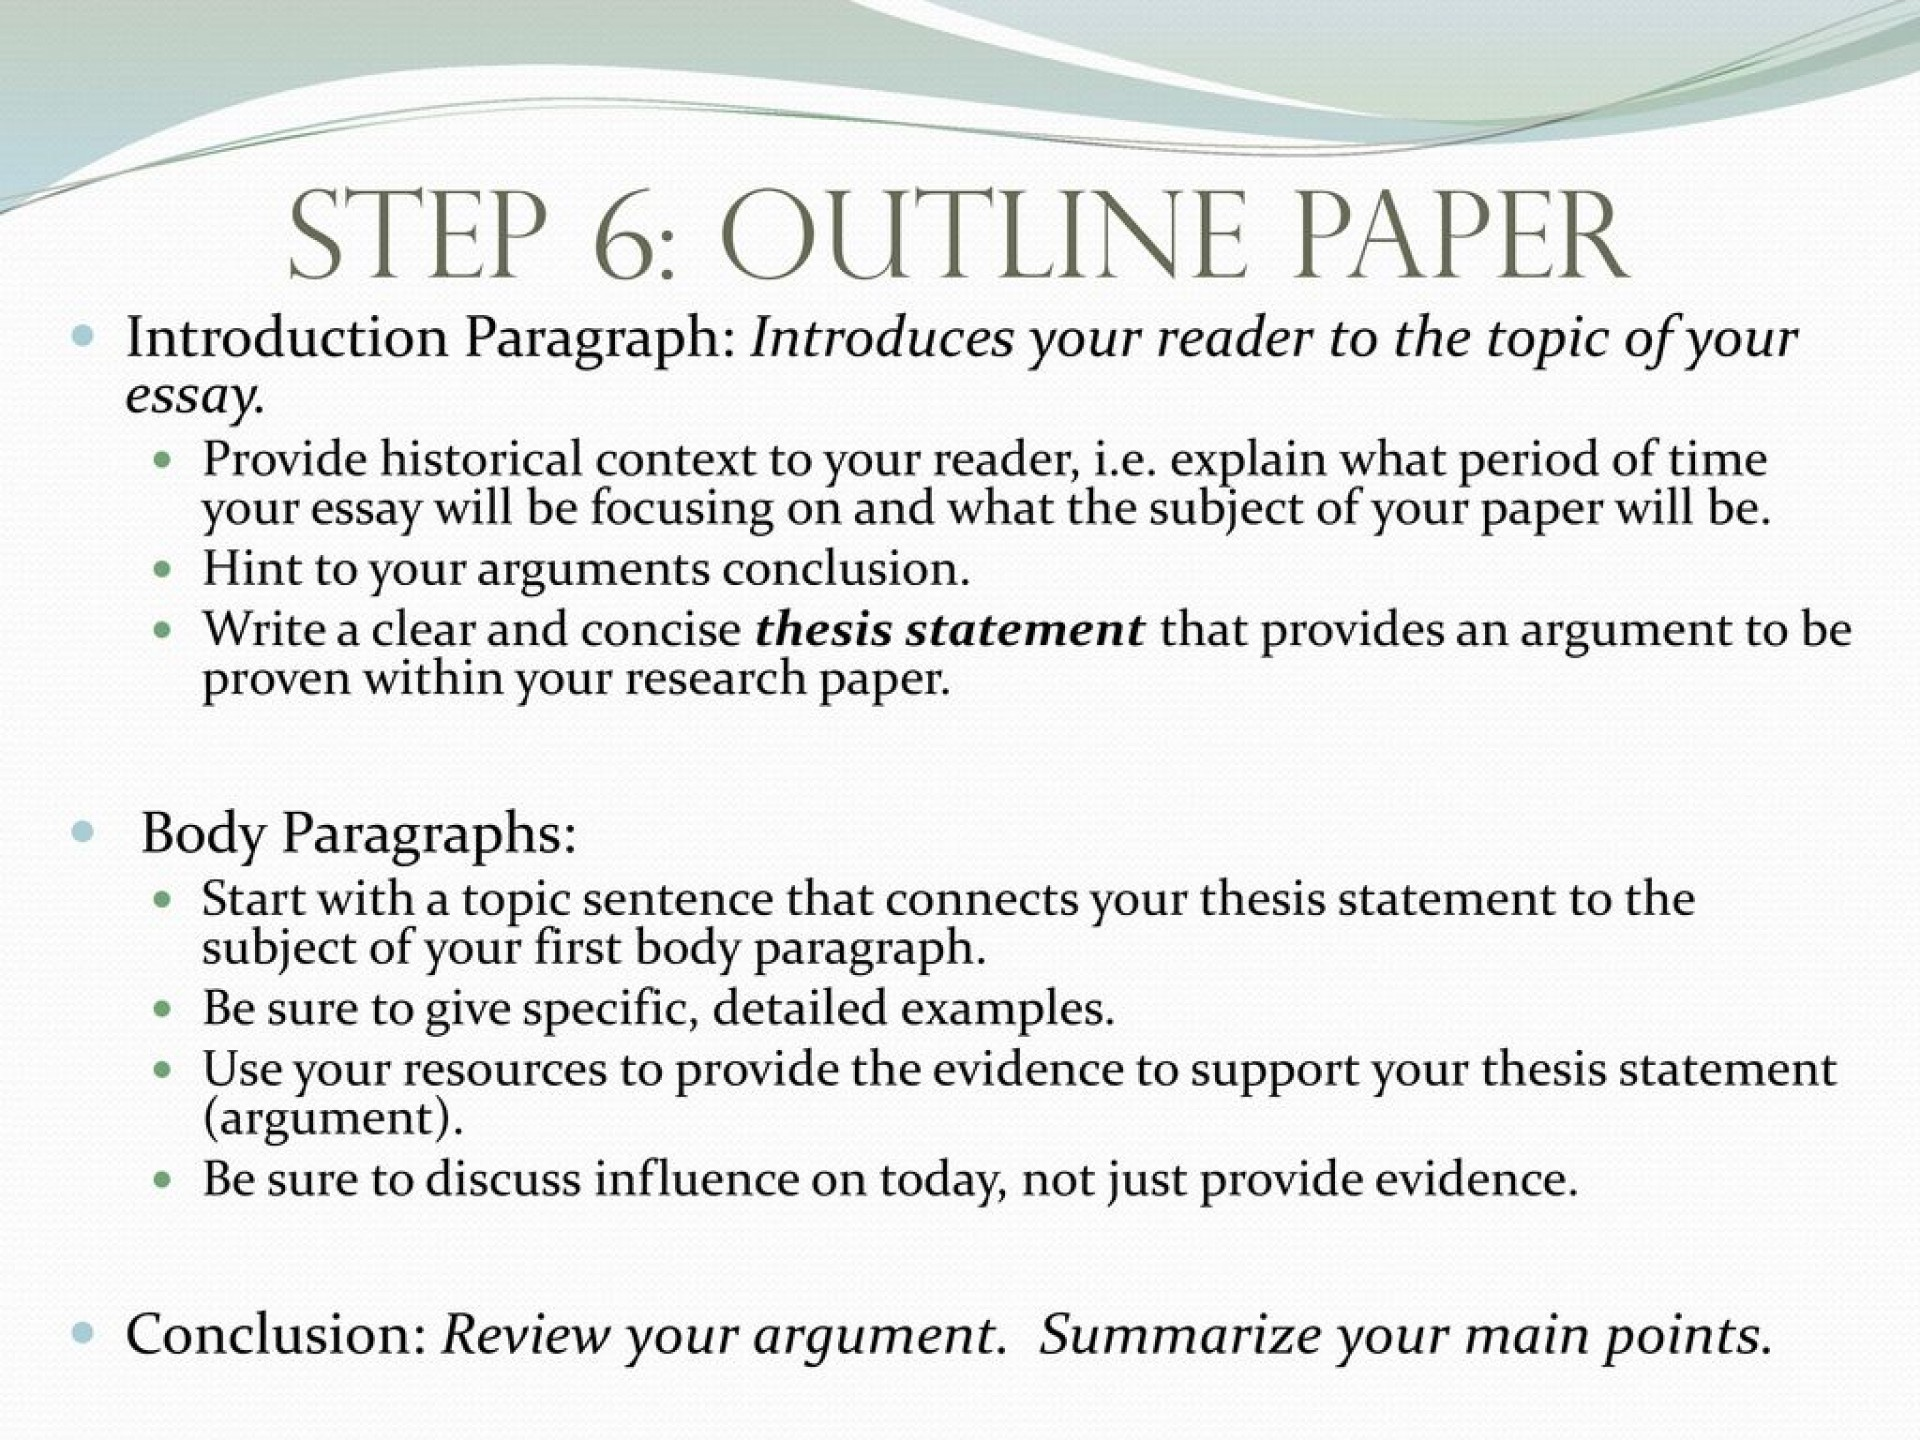 023 How To Start Research Paper Paragraph Stirring A New In Your Introduction On An Opening 1920